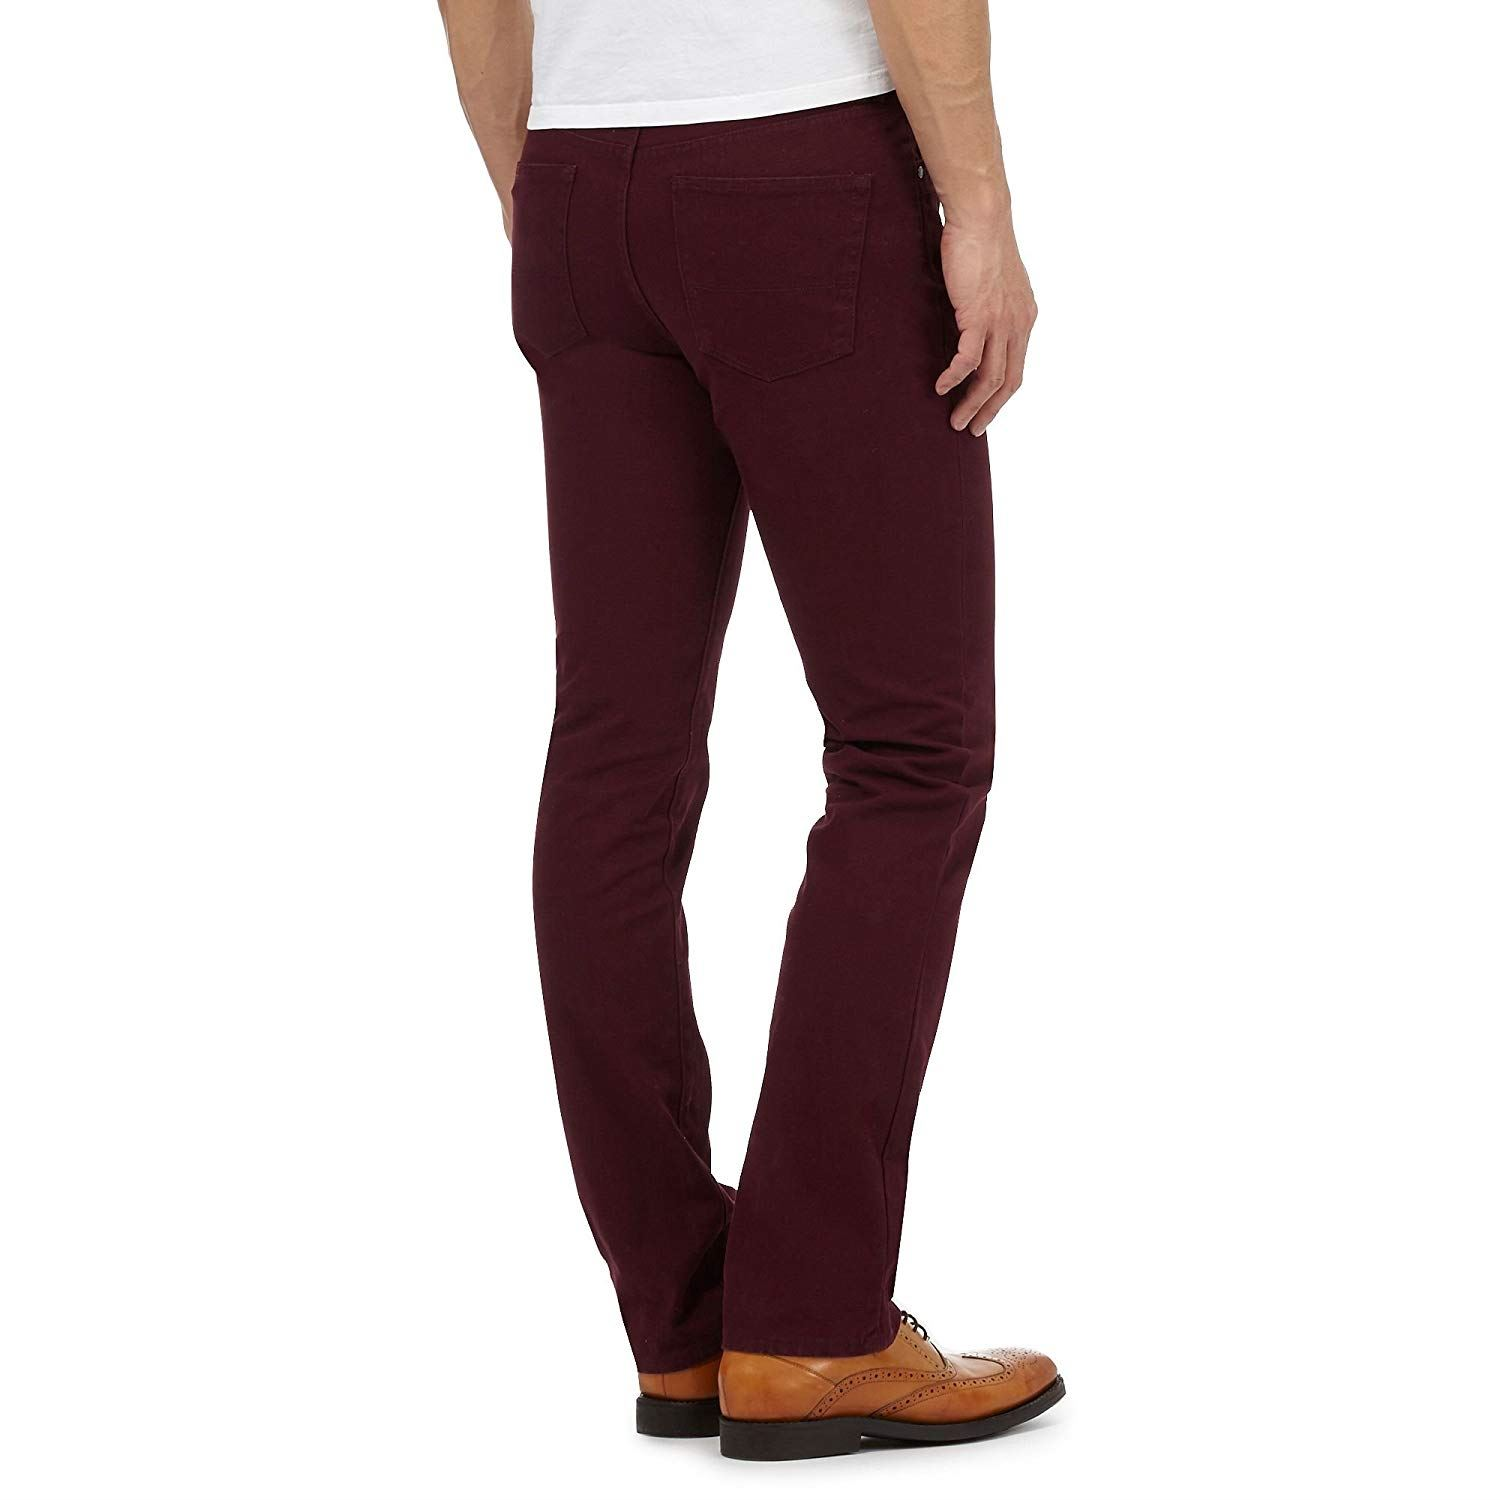 Hammond-amp-Co-By-Patrick-Grant-Twill-Trousers-Jeans thumbnail 9